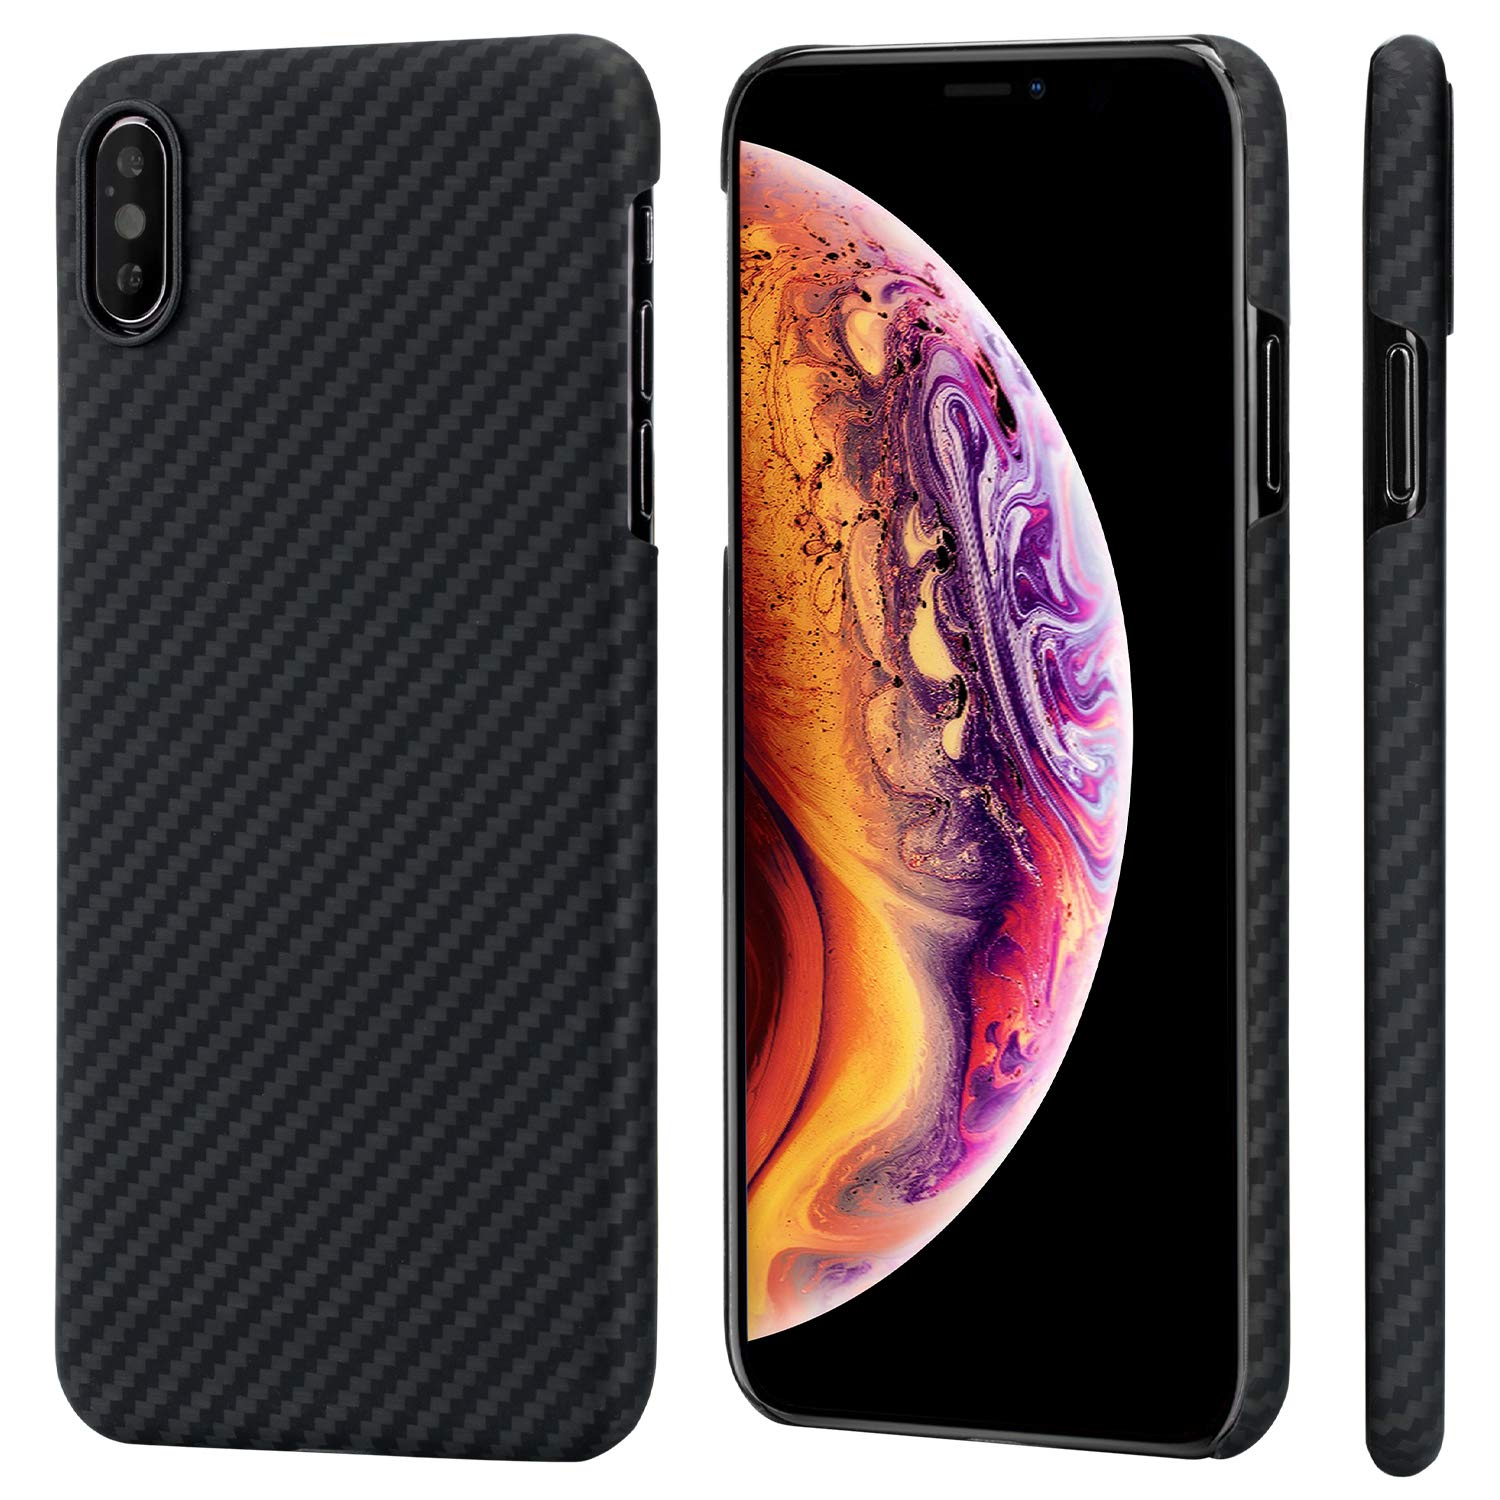 PITAKA Slim Case Compatible with iPhone Xs Max 6.5'', MagCase Aramid Fiber [Real Body Armor Material] Phone Case,Minimalist Strongest Durable Snugly Fit Snap-on Case - Black/Grey(Twill) by PITAKA